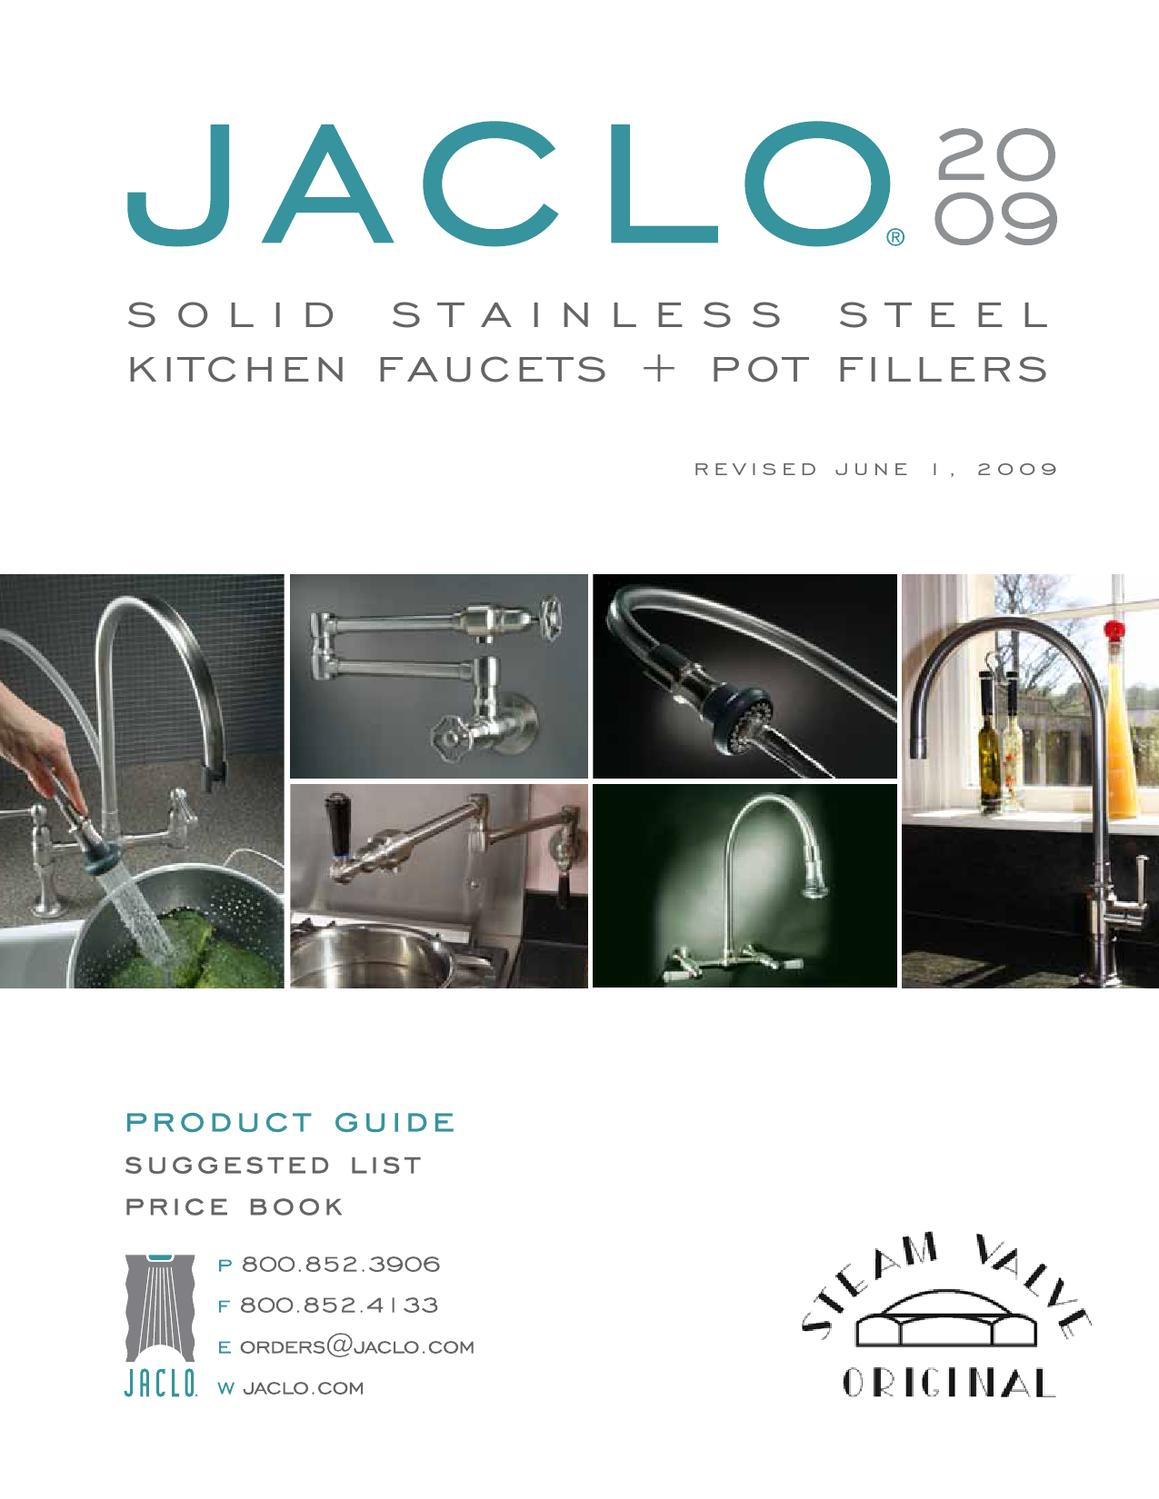 Brushed Stainless Steel Standard Plumbing Supply Jaclo 1007-M-BSS Metal Lever Handle for All Steam Valve Original Faucets Except Single Lever